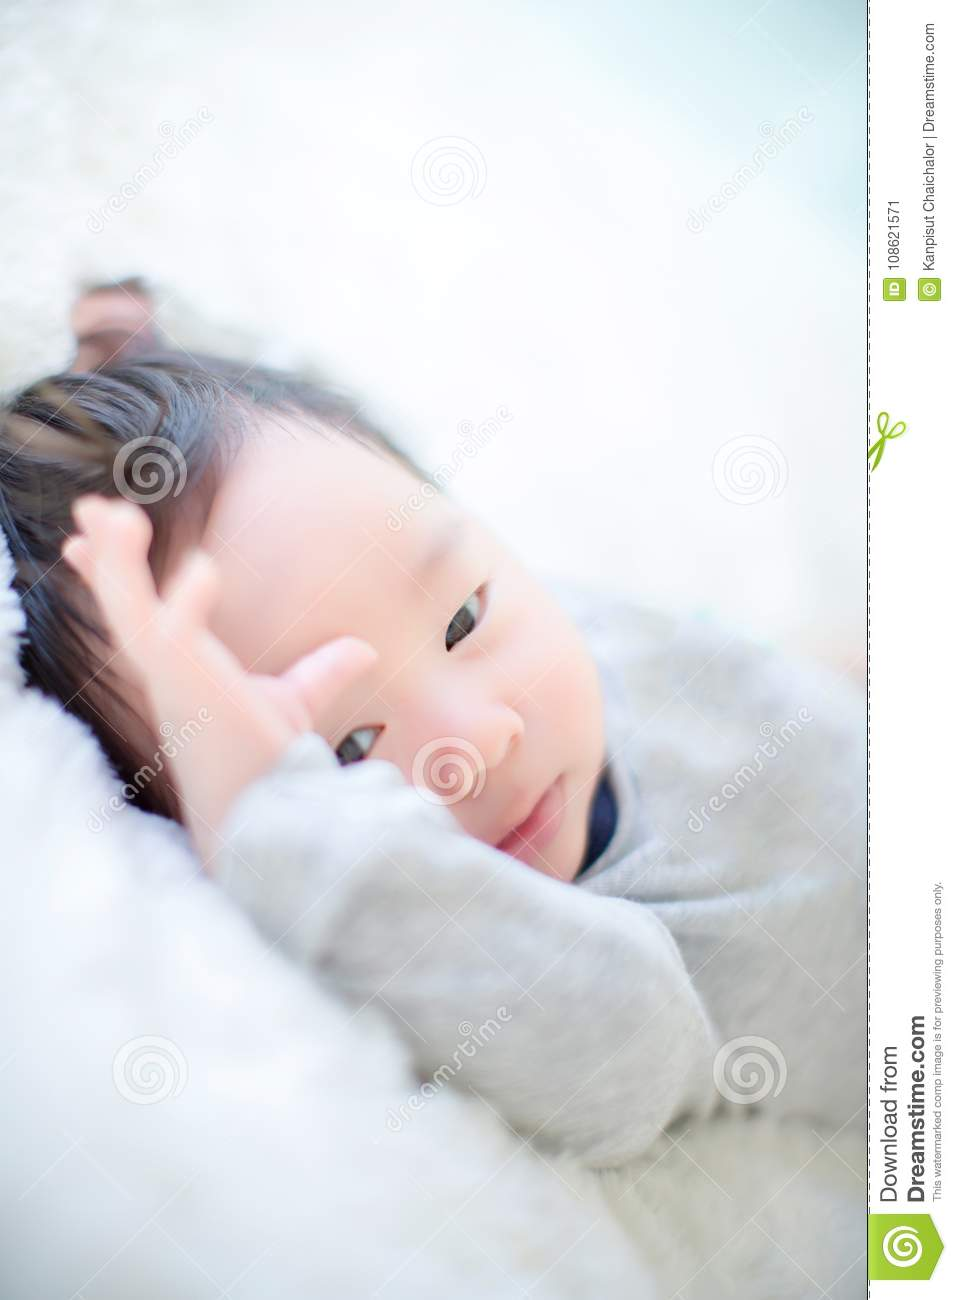 Cute baby boy is shooting in the studio fashion image of baby and family lovely baby lie down on a soft white carpet